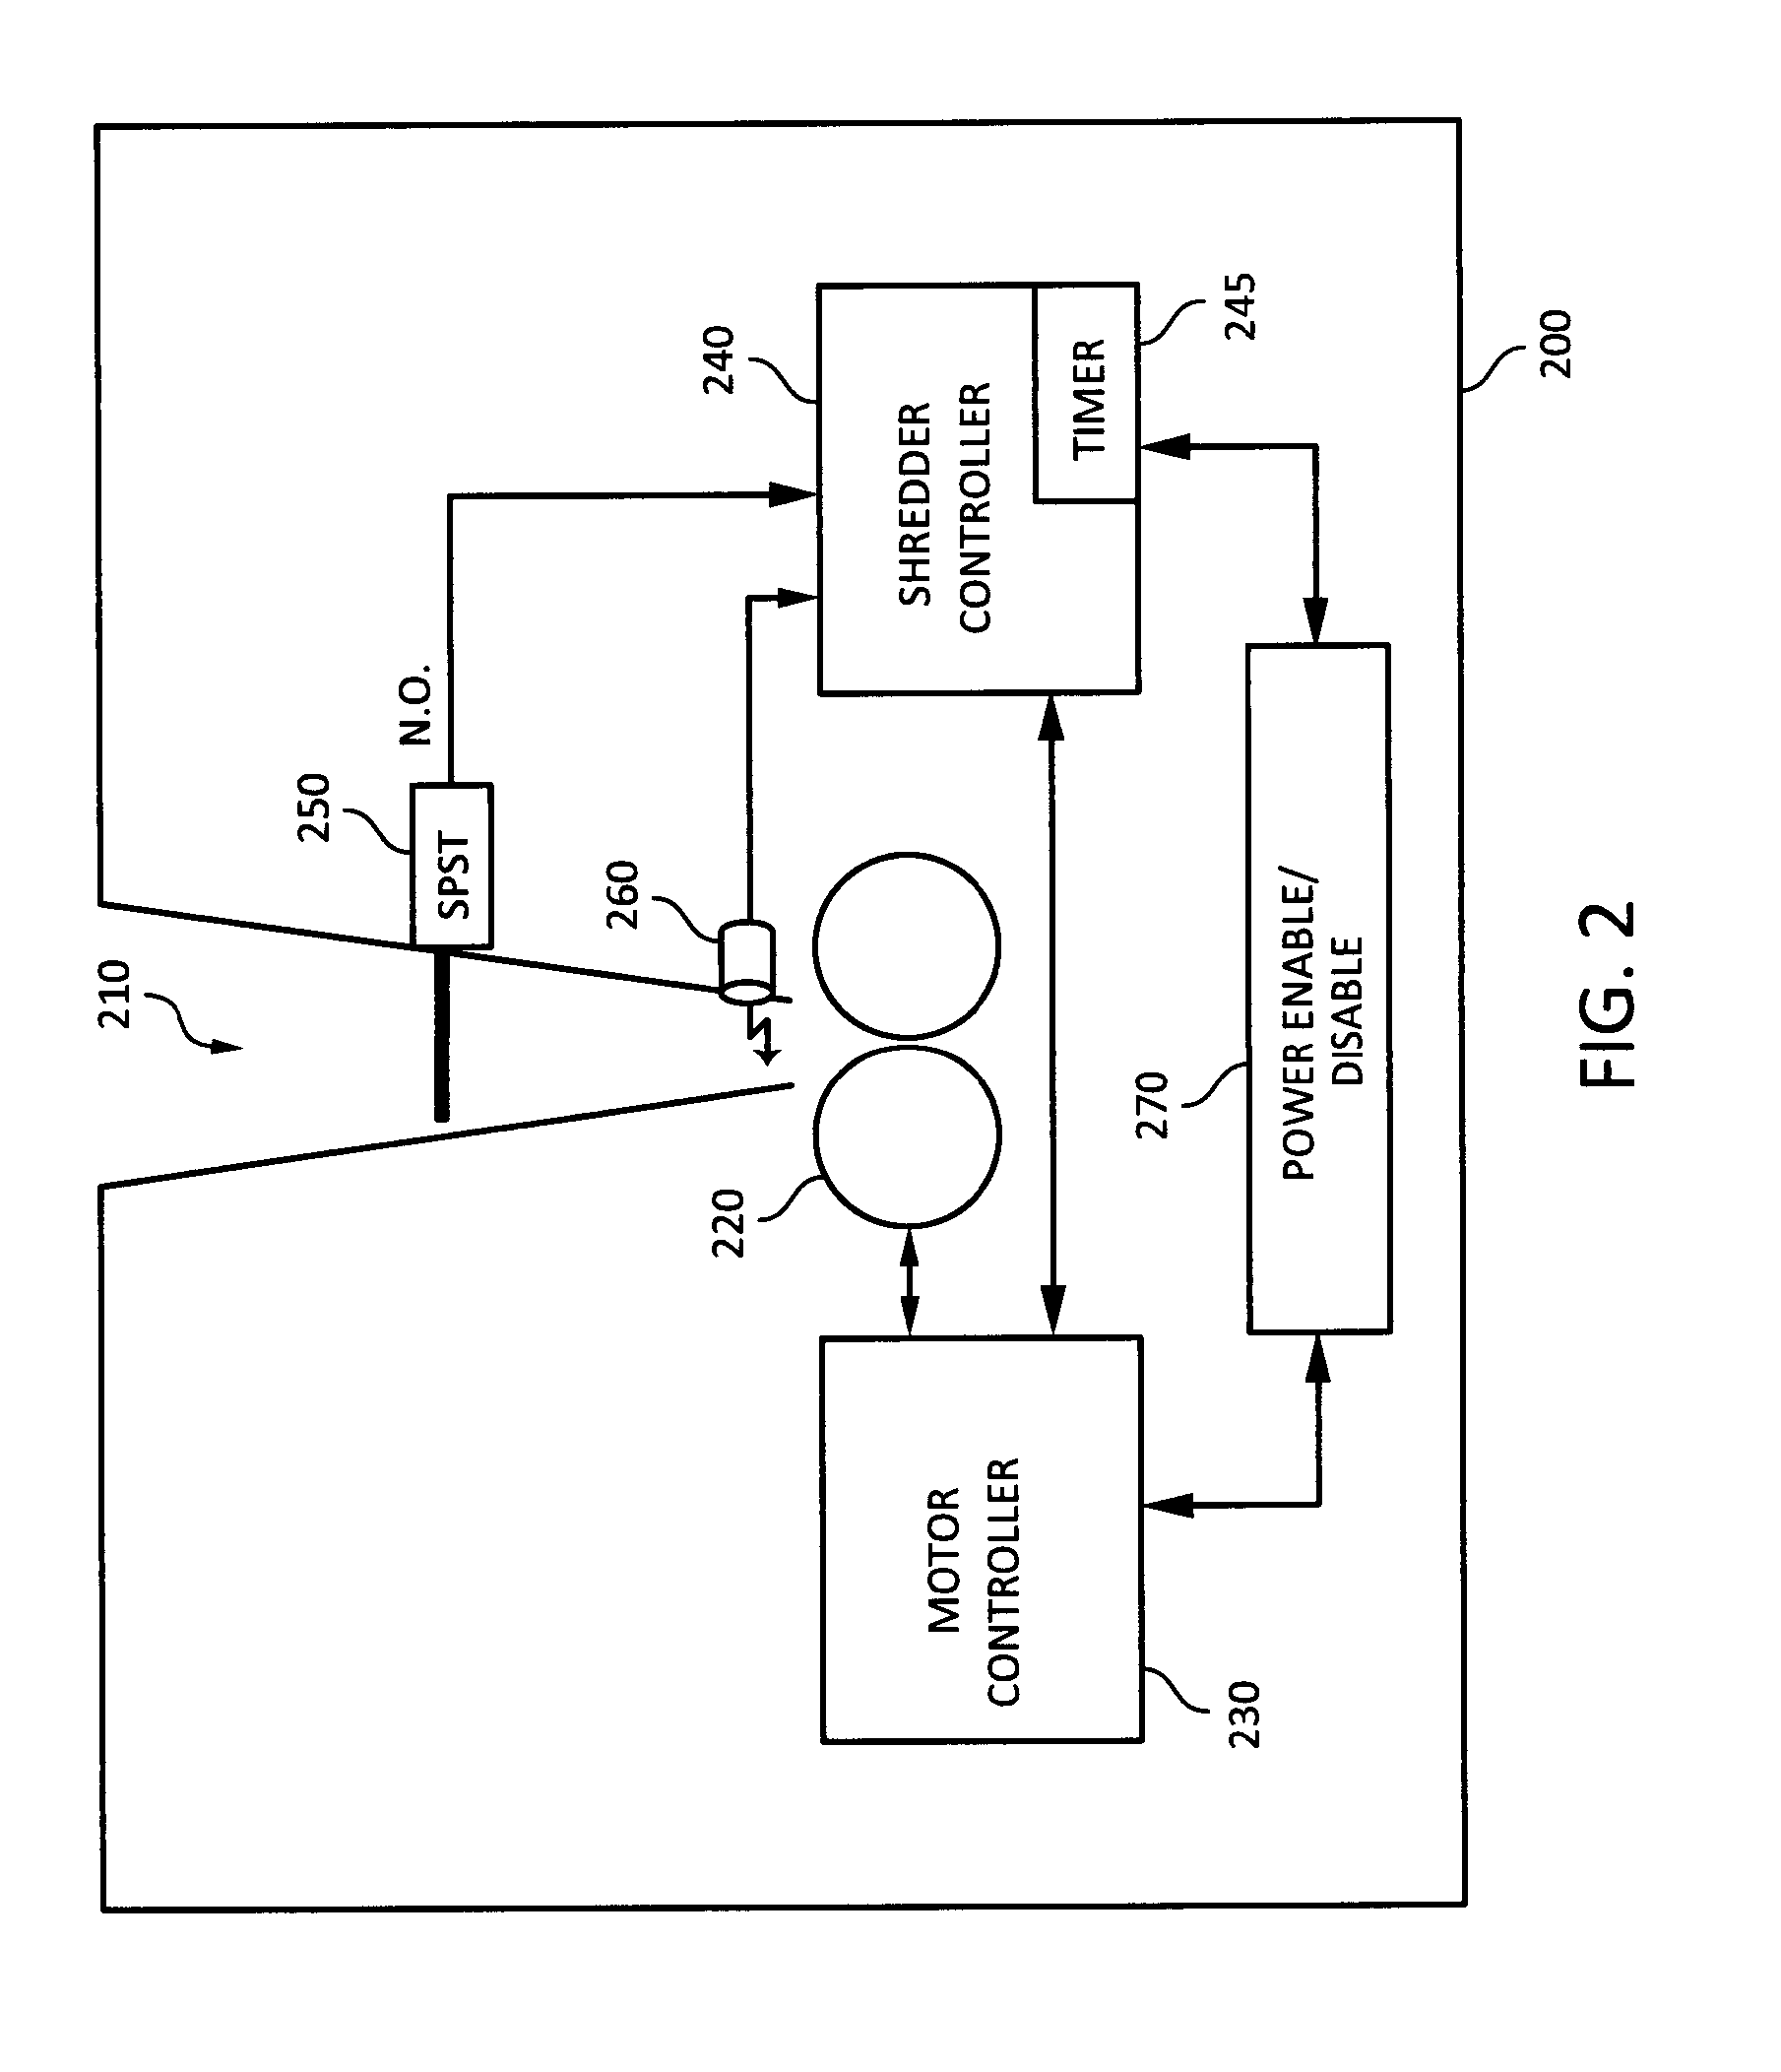 patent us20130037637 depowered standby paper shredder and method patents